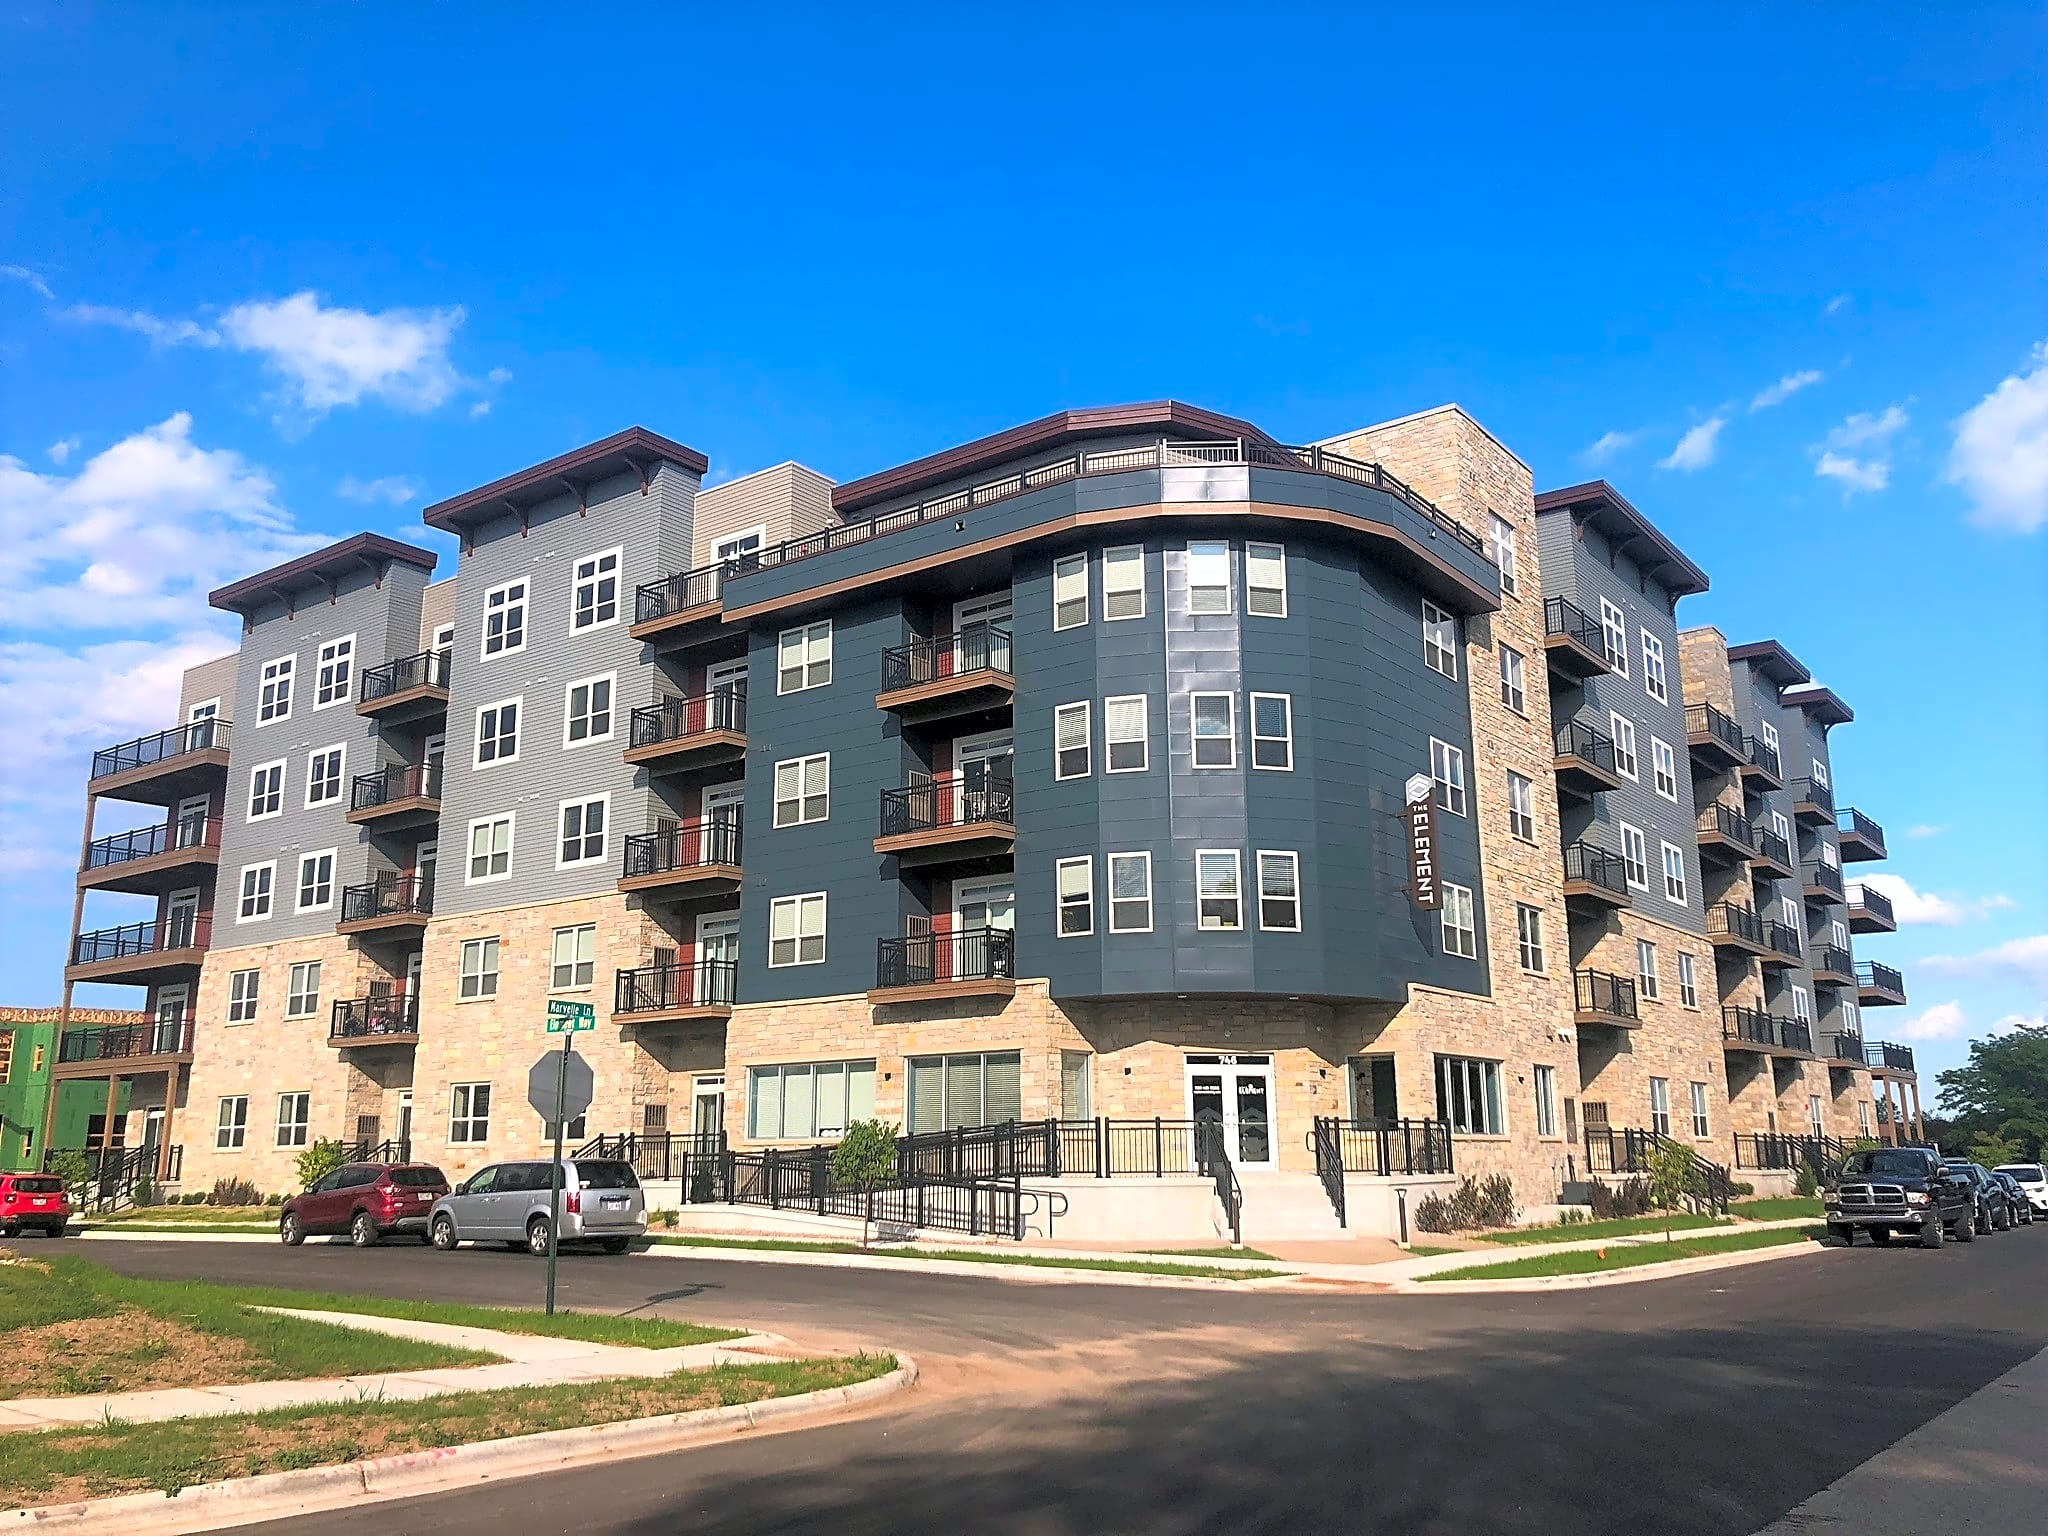 Apartments Near Rasmussen College-Wisconsin The Element Apartments for Rasmussen College-Wisconsin Students in Green Bay, WI